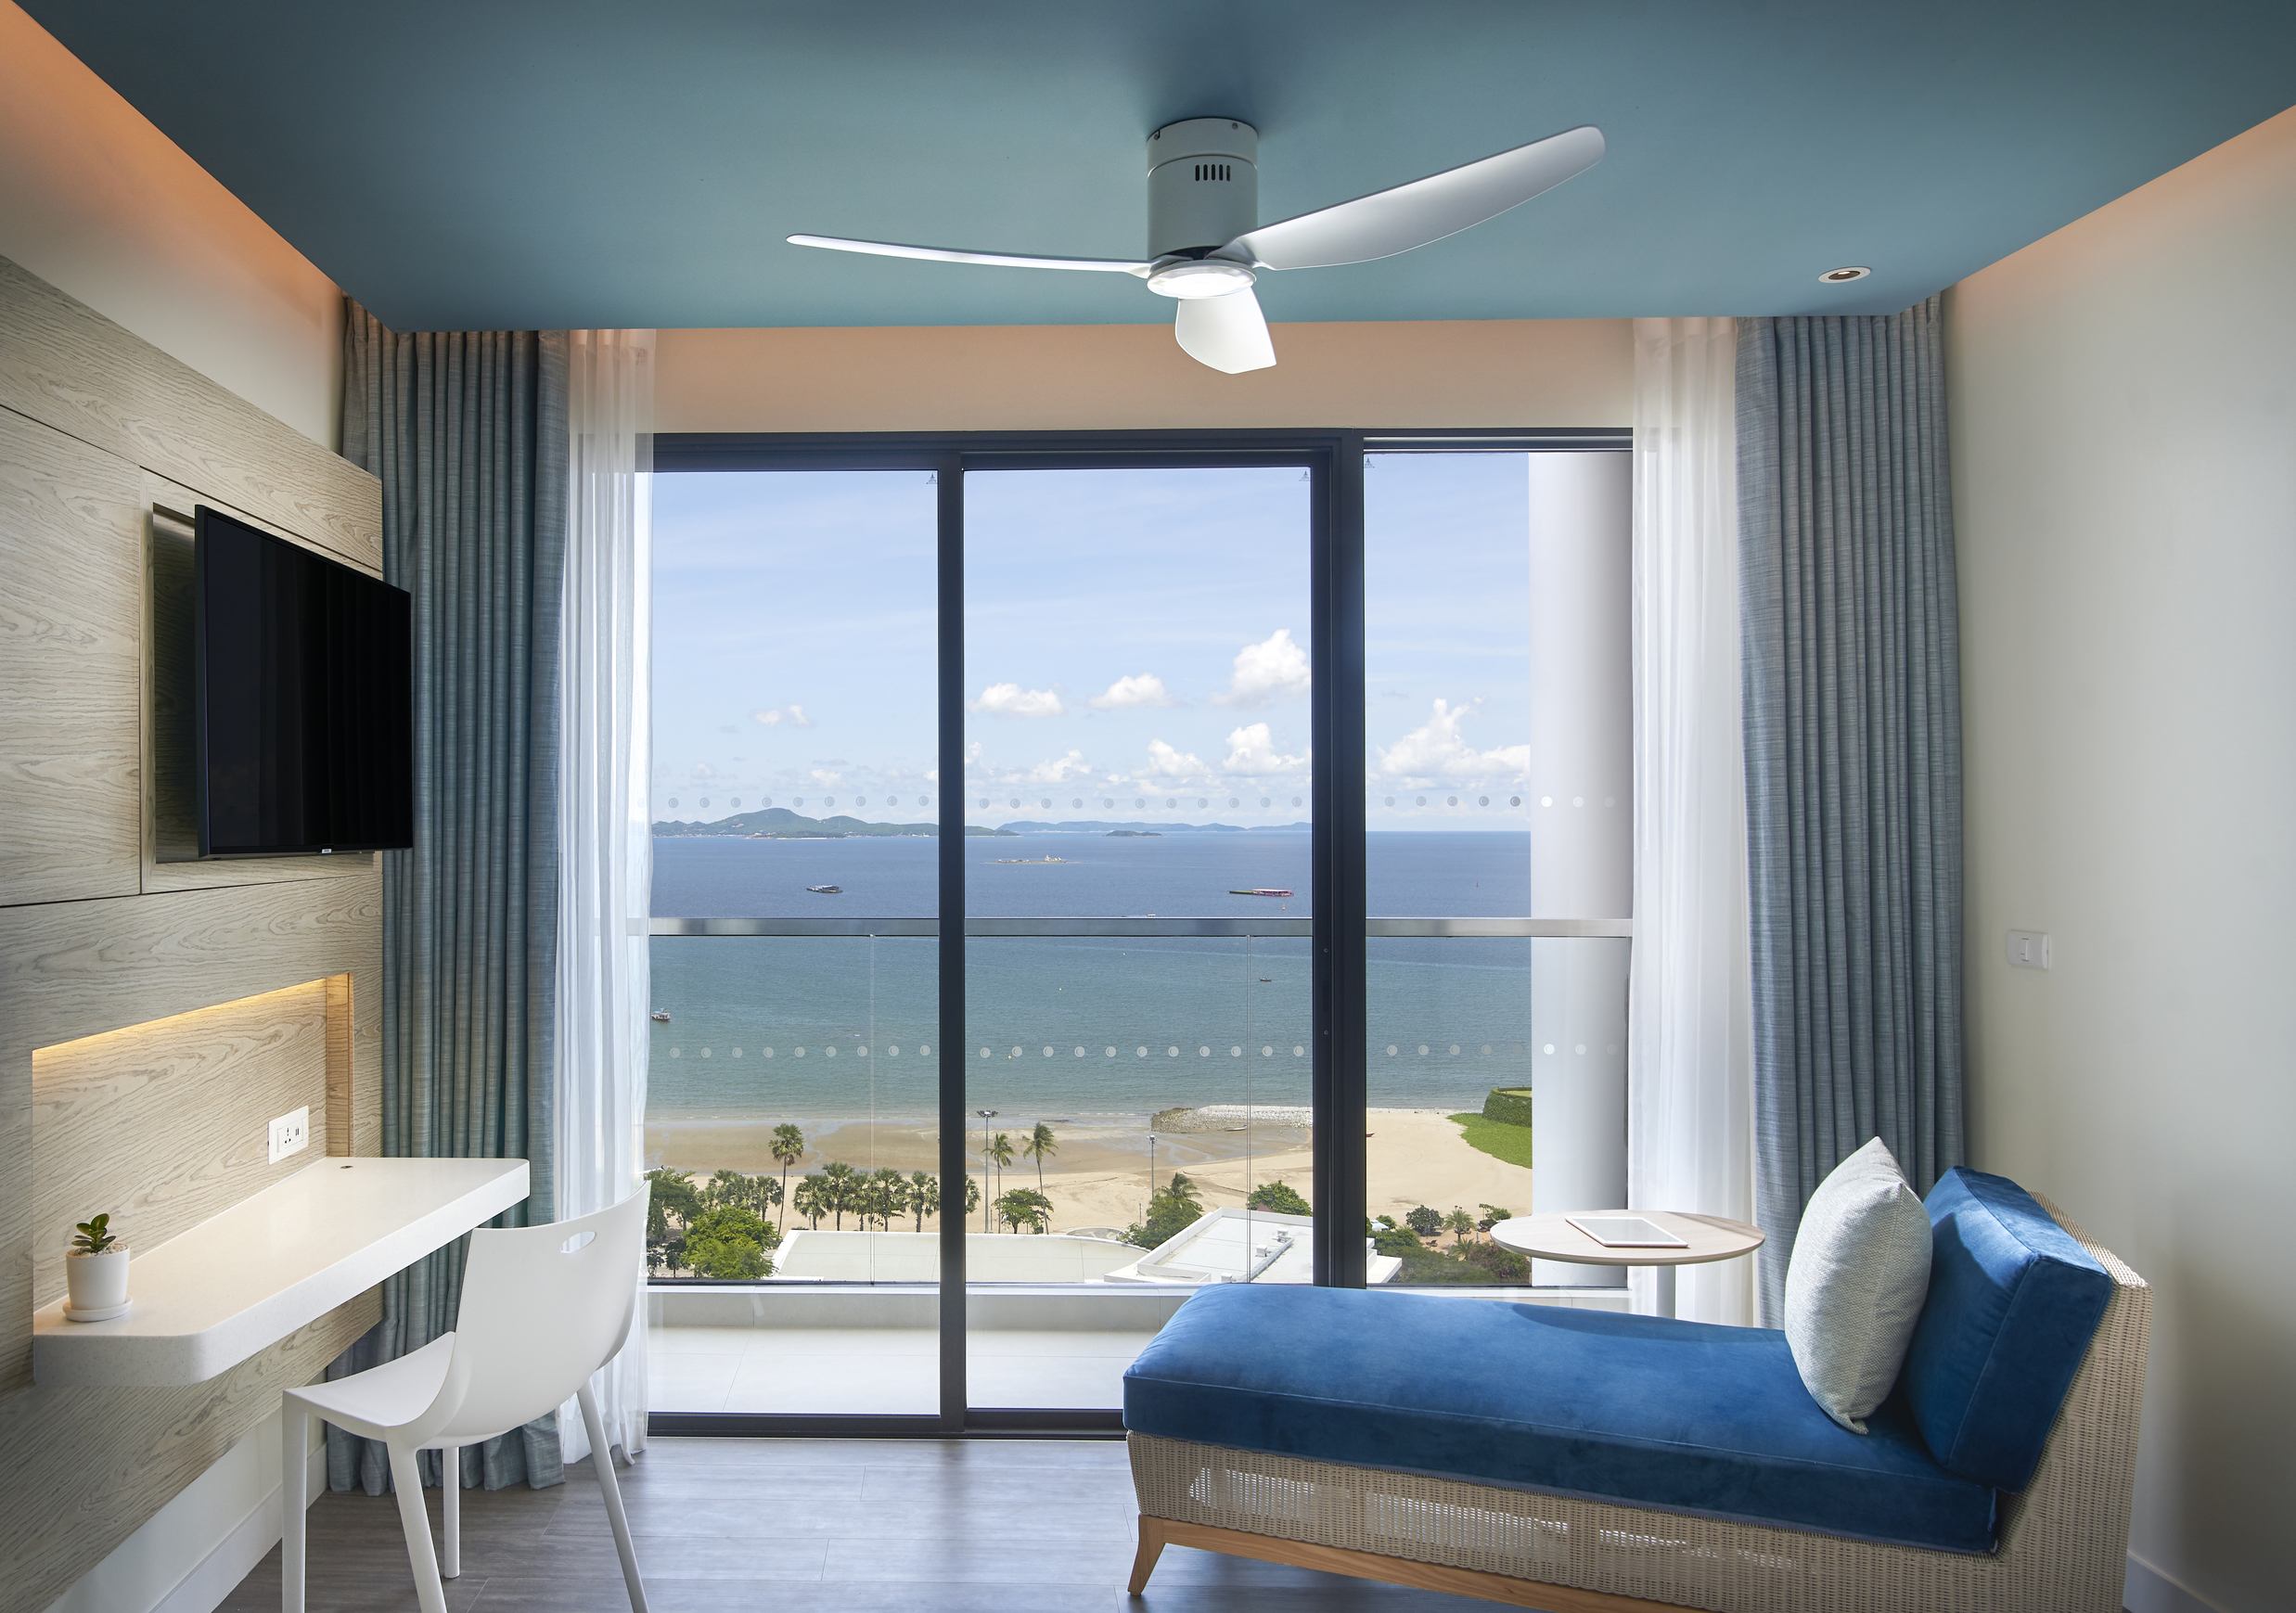 Check-in: OZO North Pattaya